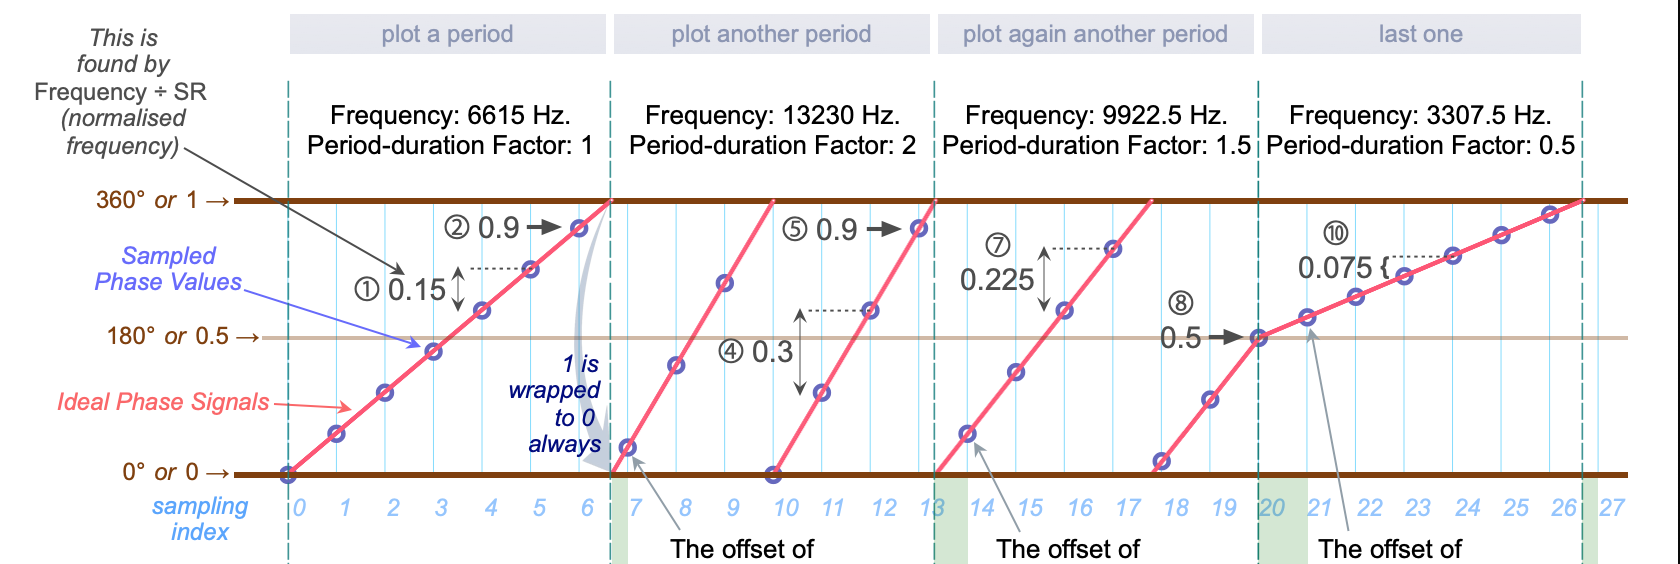 The points/circles and lines are exactly drawn in the plot~ object.